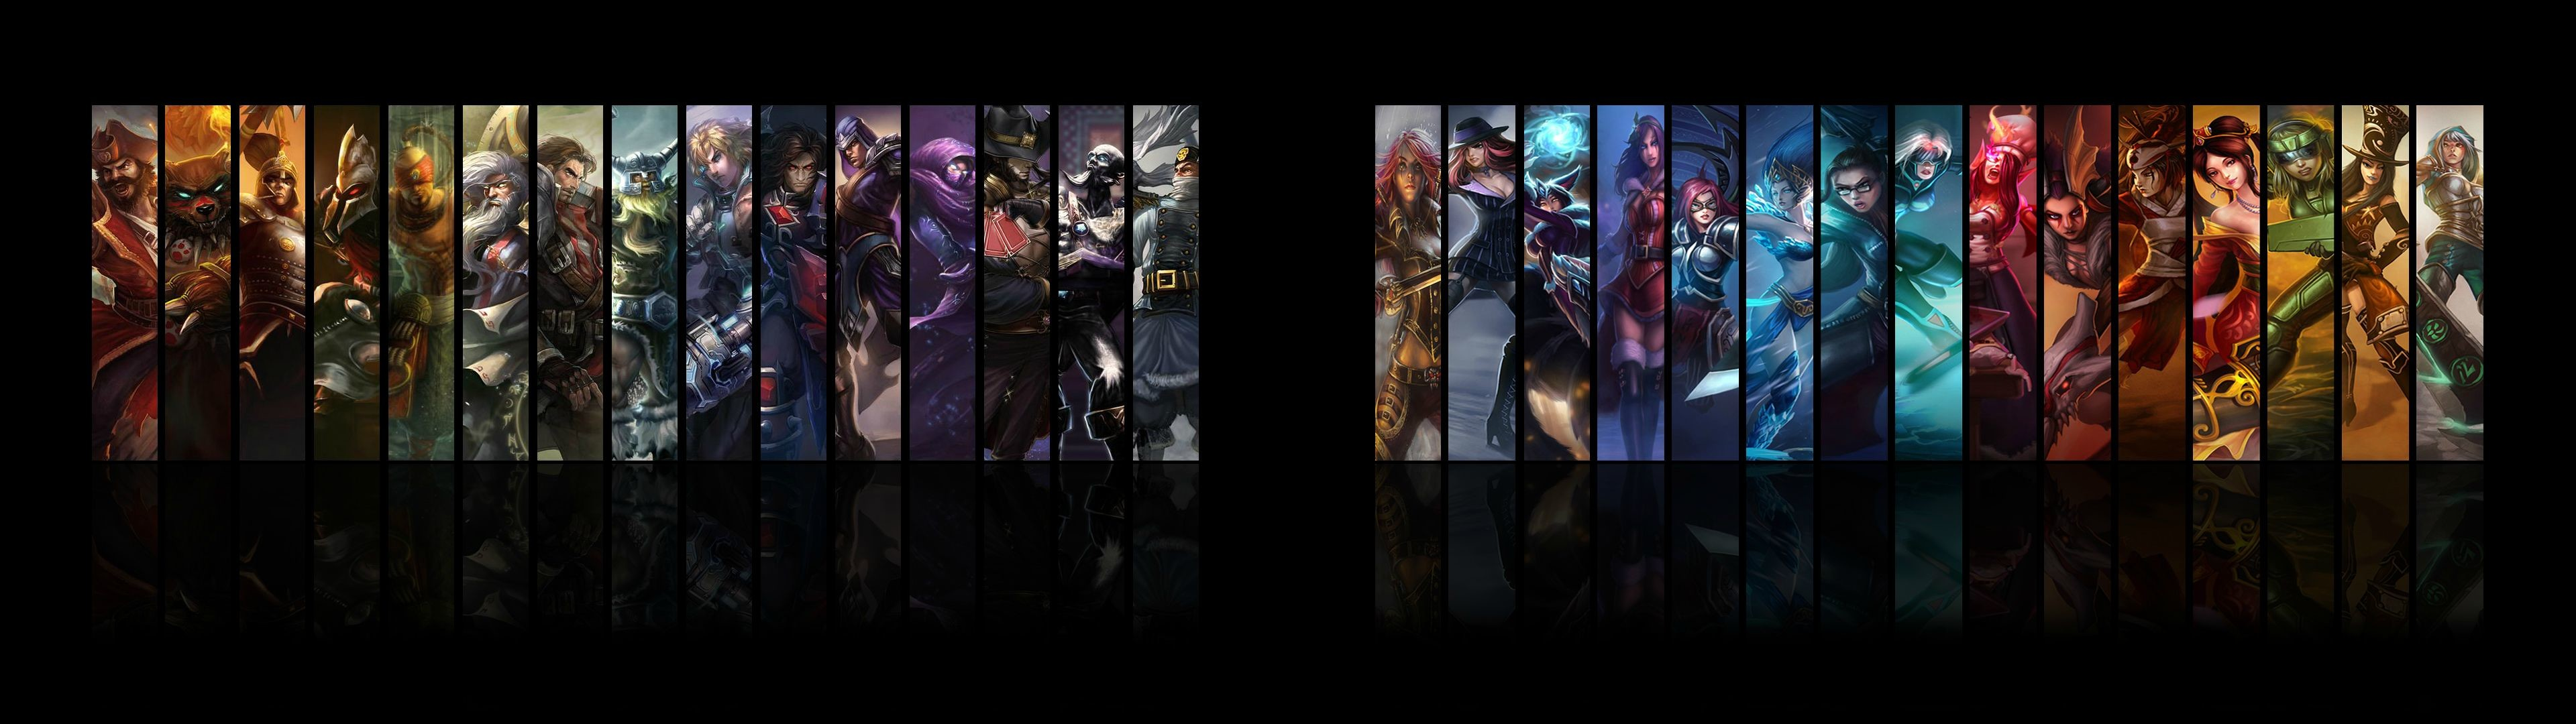 3840x1080 Dual Monitor Wallpaper League Of Legends